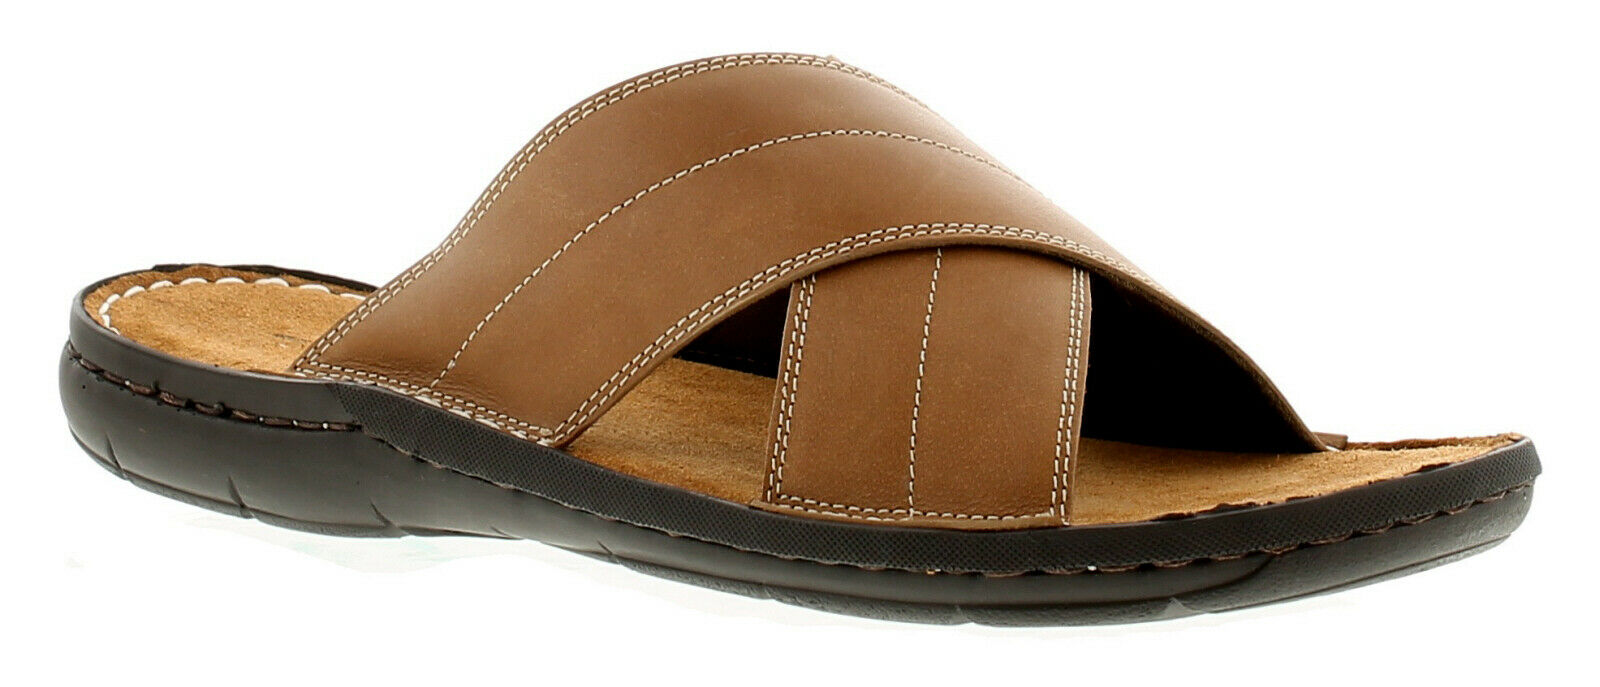 Barrier Island Victory Mens Leather Casual Beach Sandals Tan